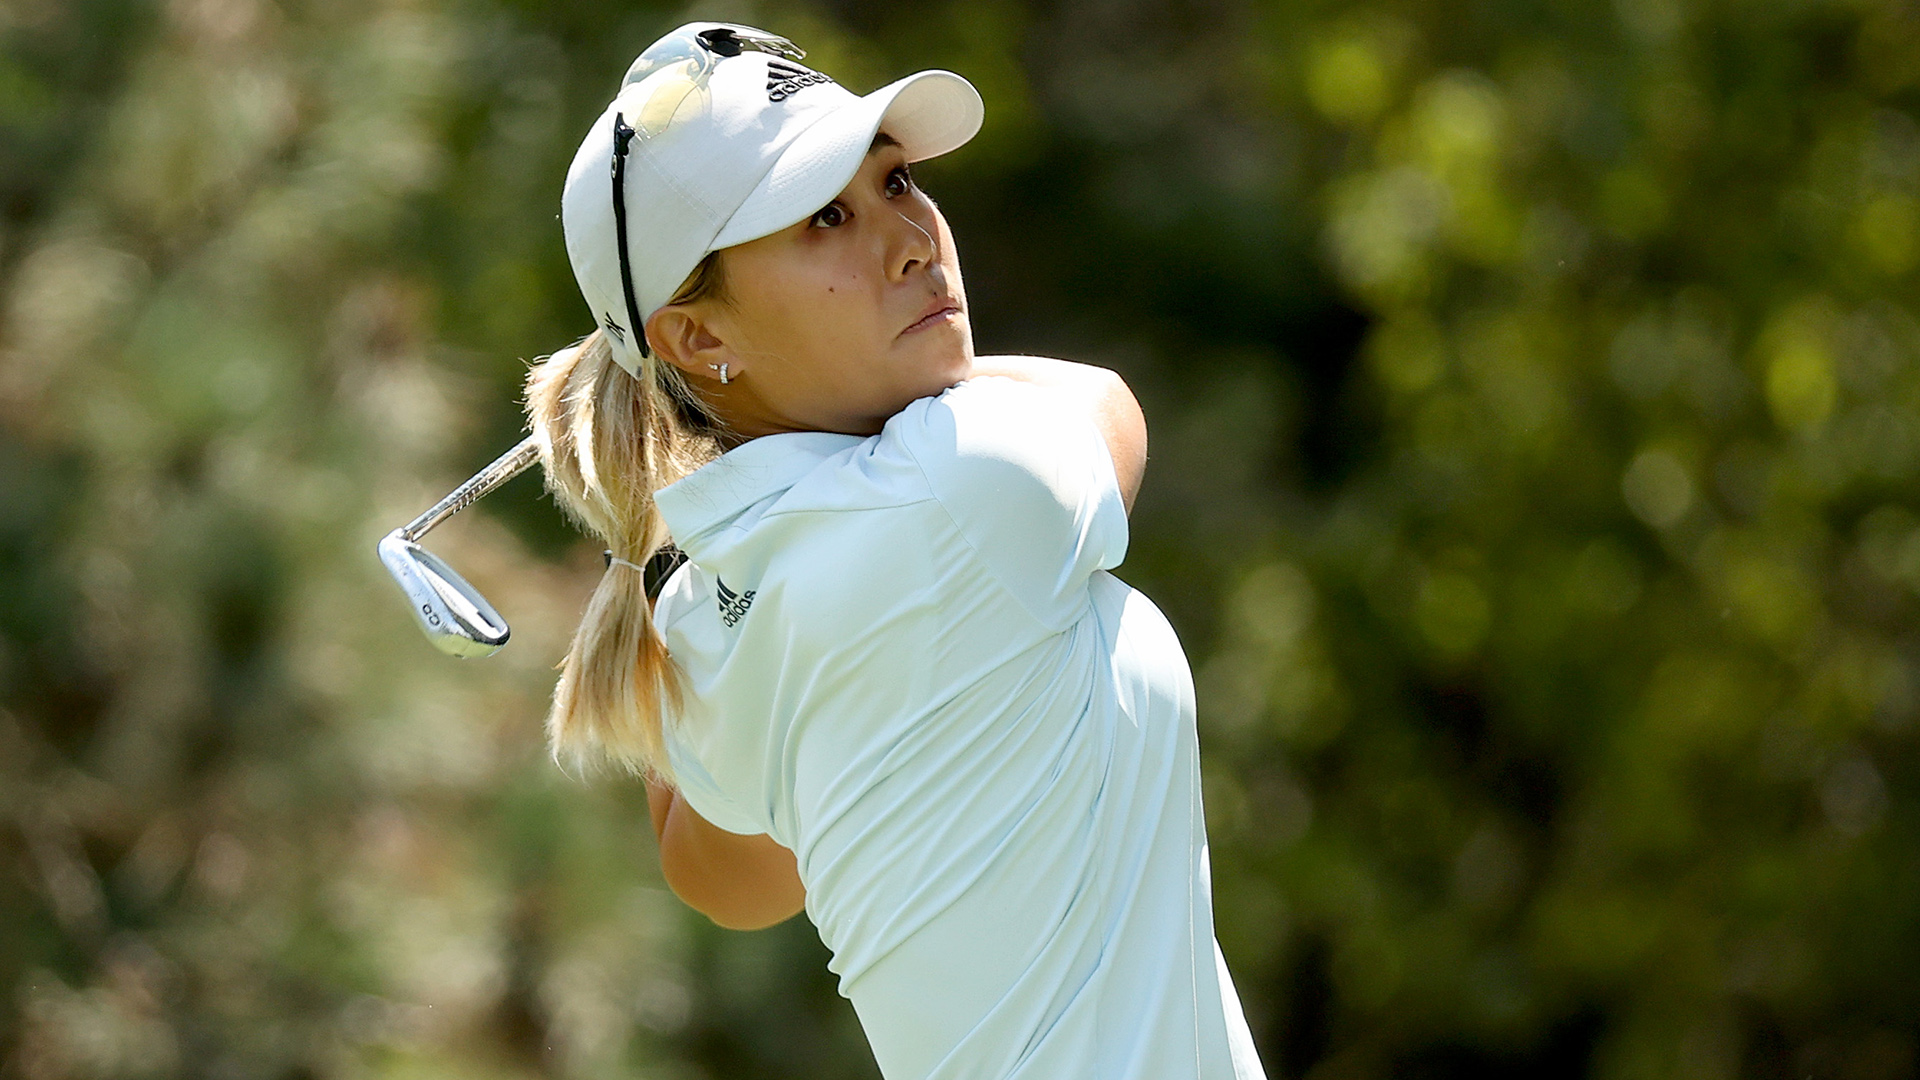 Going for third straight win, Danielle Kang uncomfortable